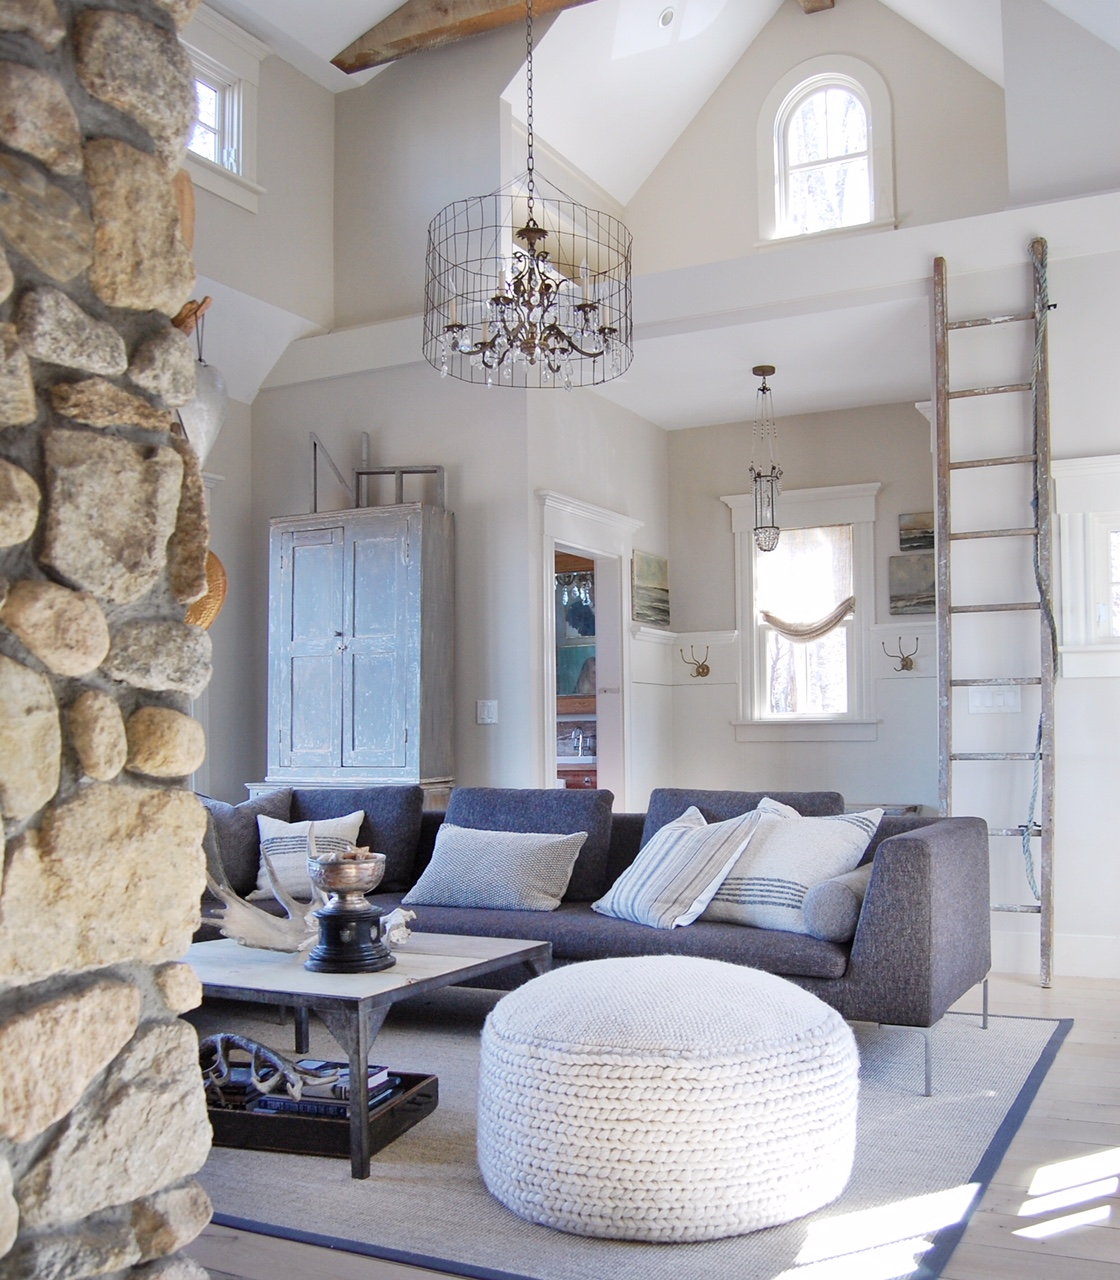 New England beach cottage living room with a collected mix of vintage and modern. Design by Sandra Cavallo, @oldsilvershed